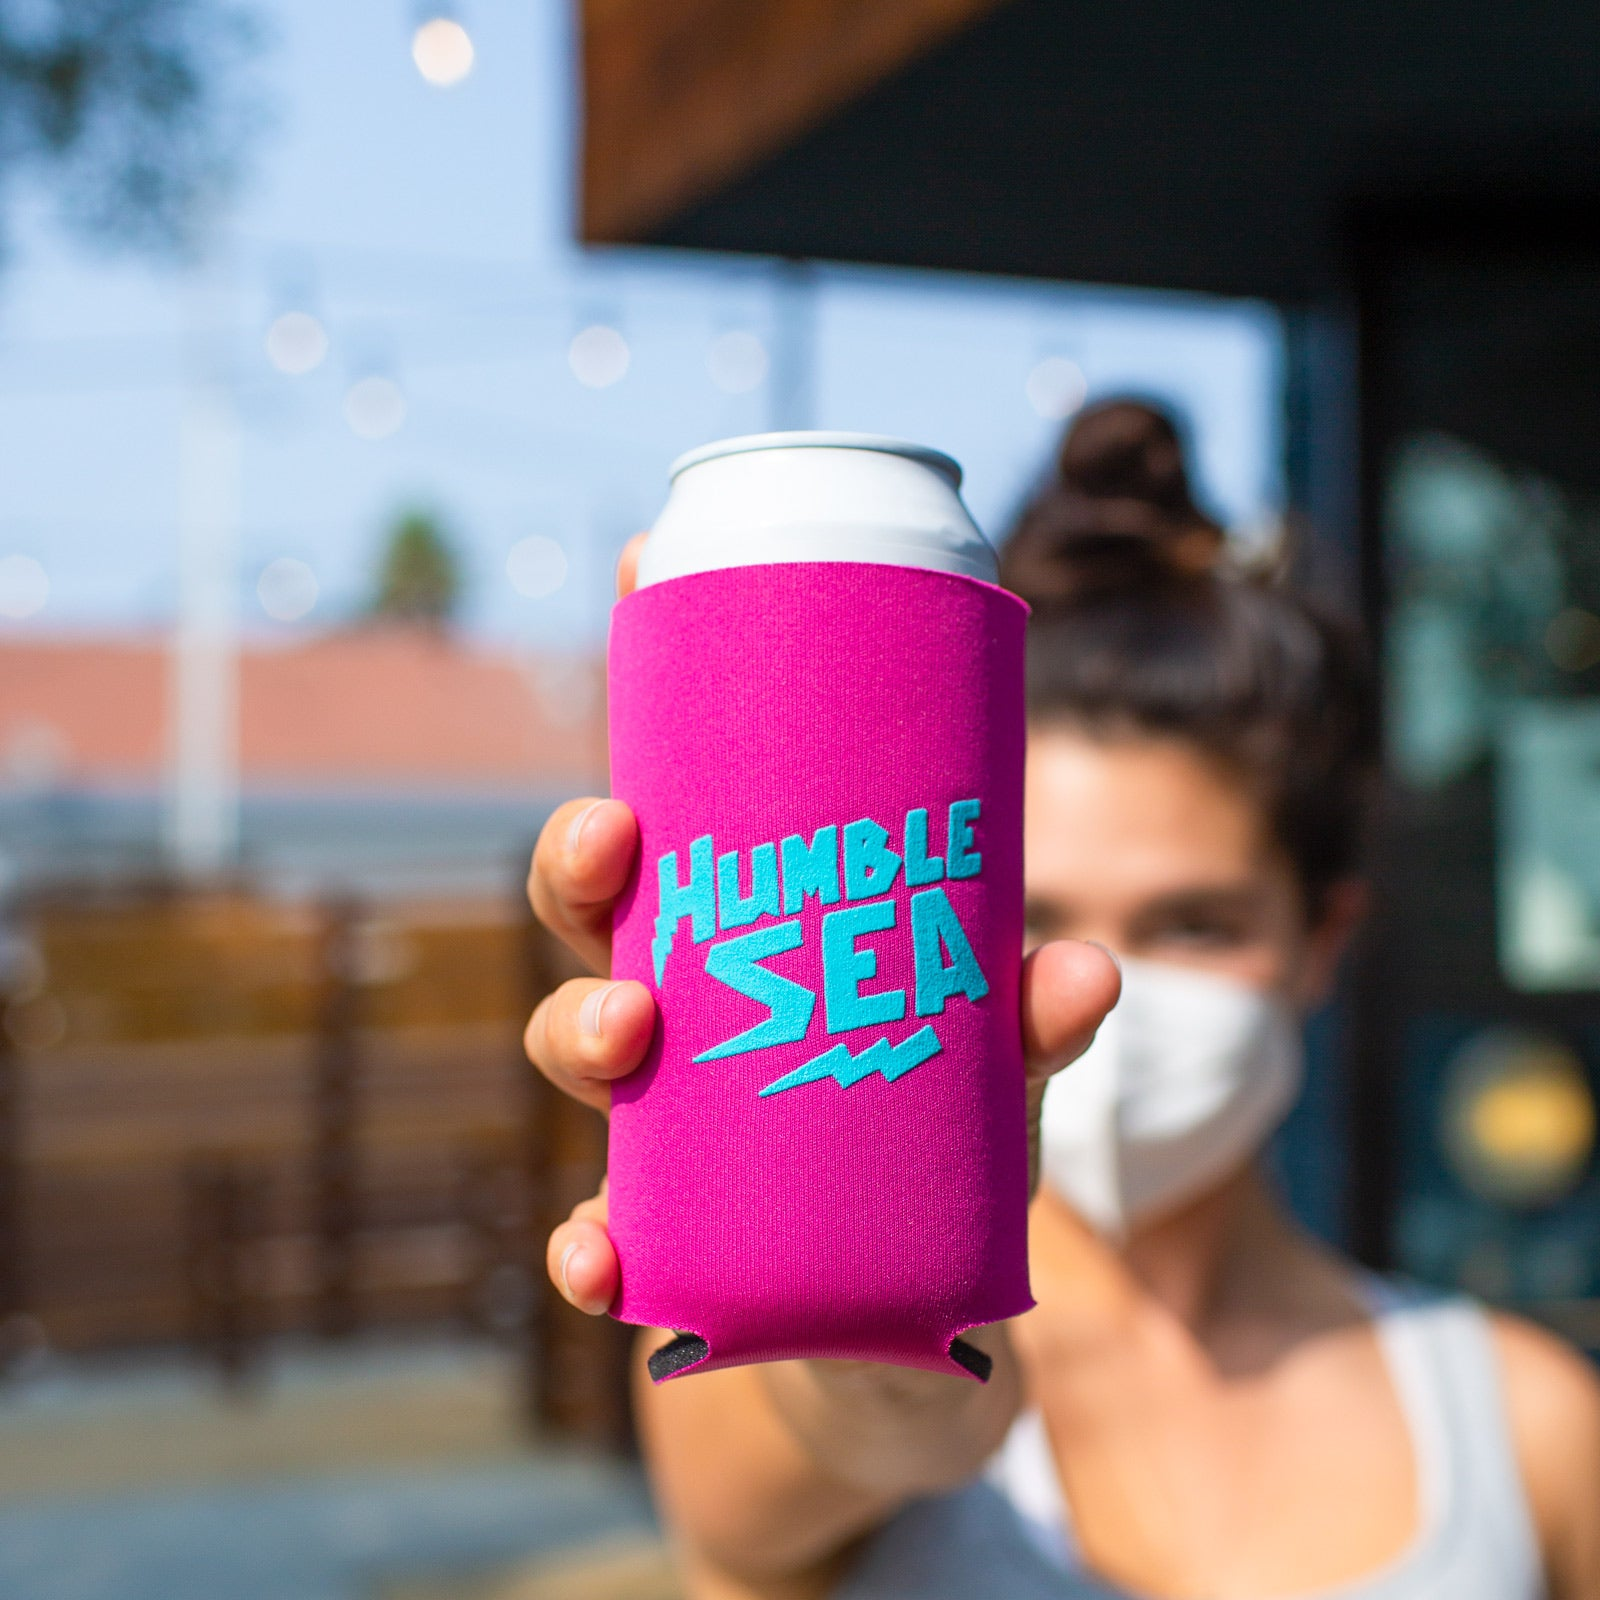 Humble Sea 16 oz Kook Koozie for cans